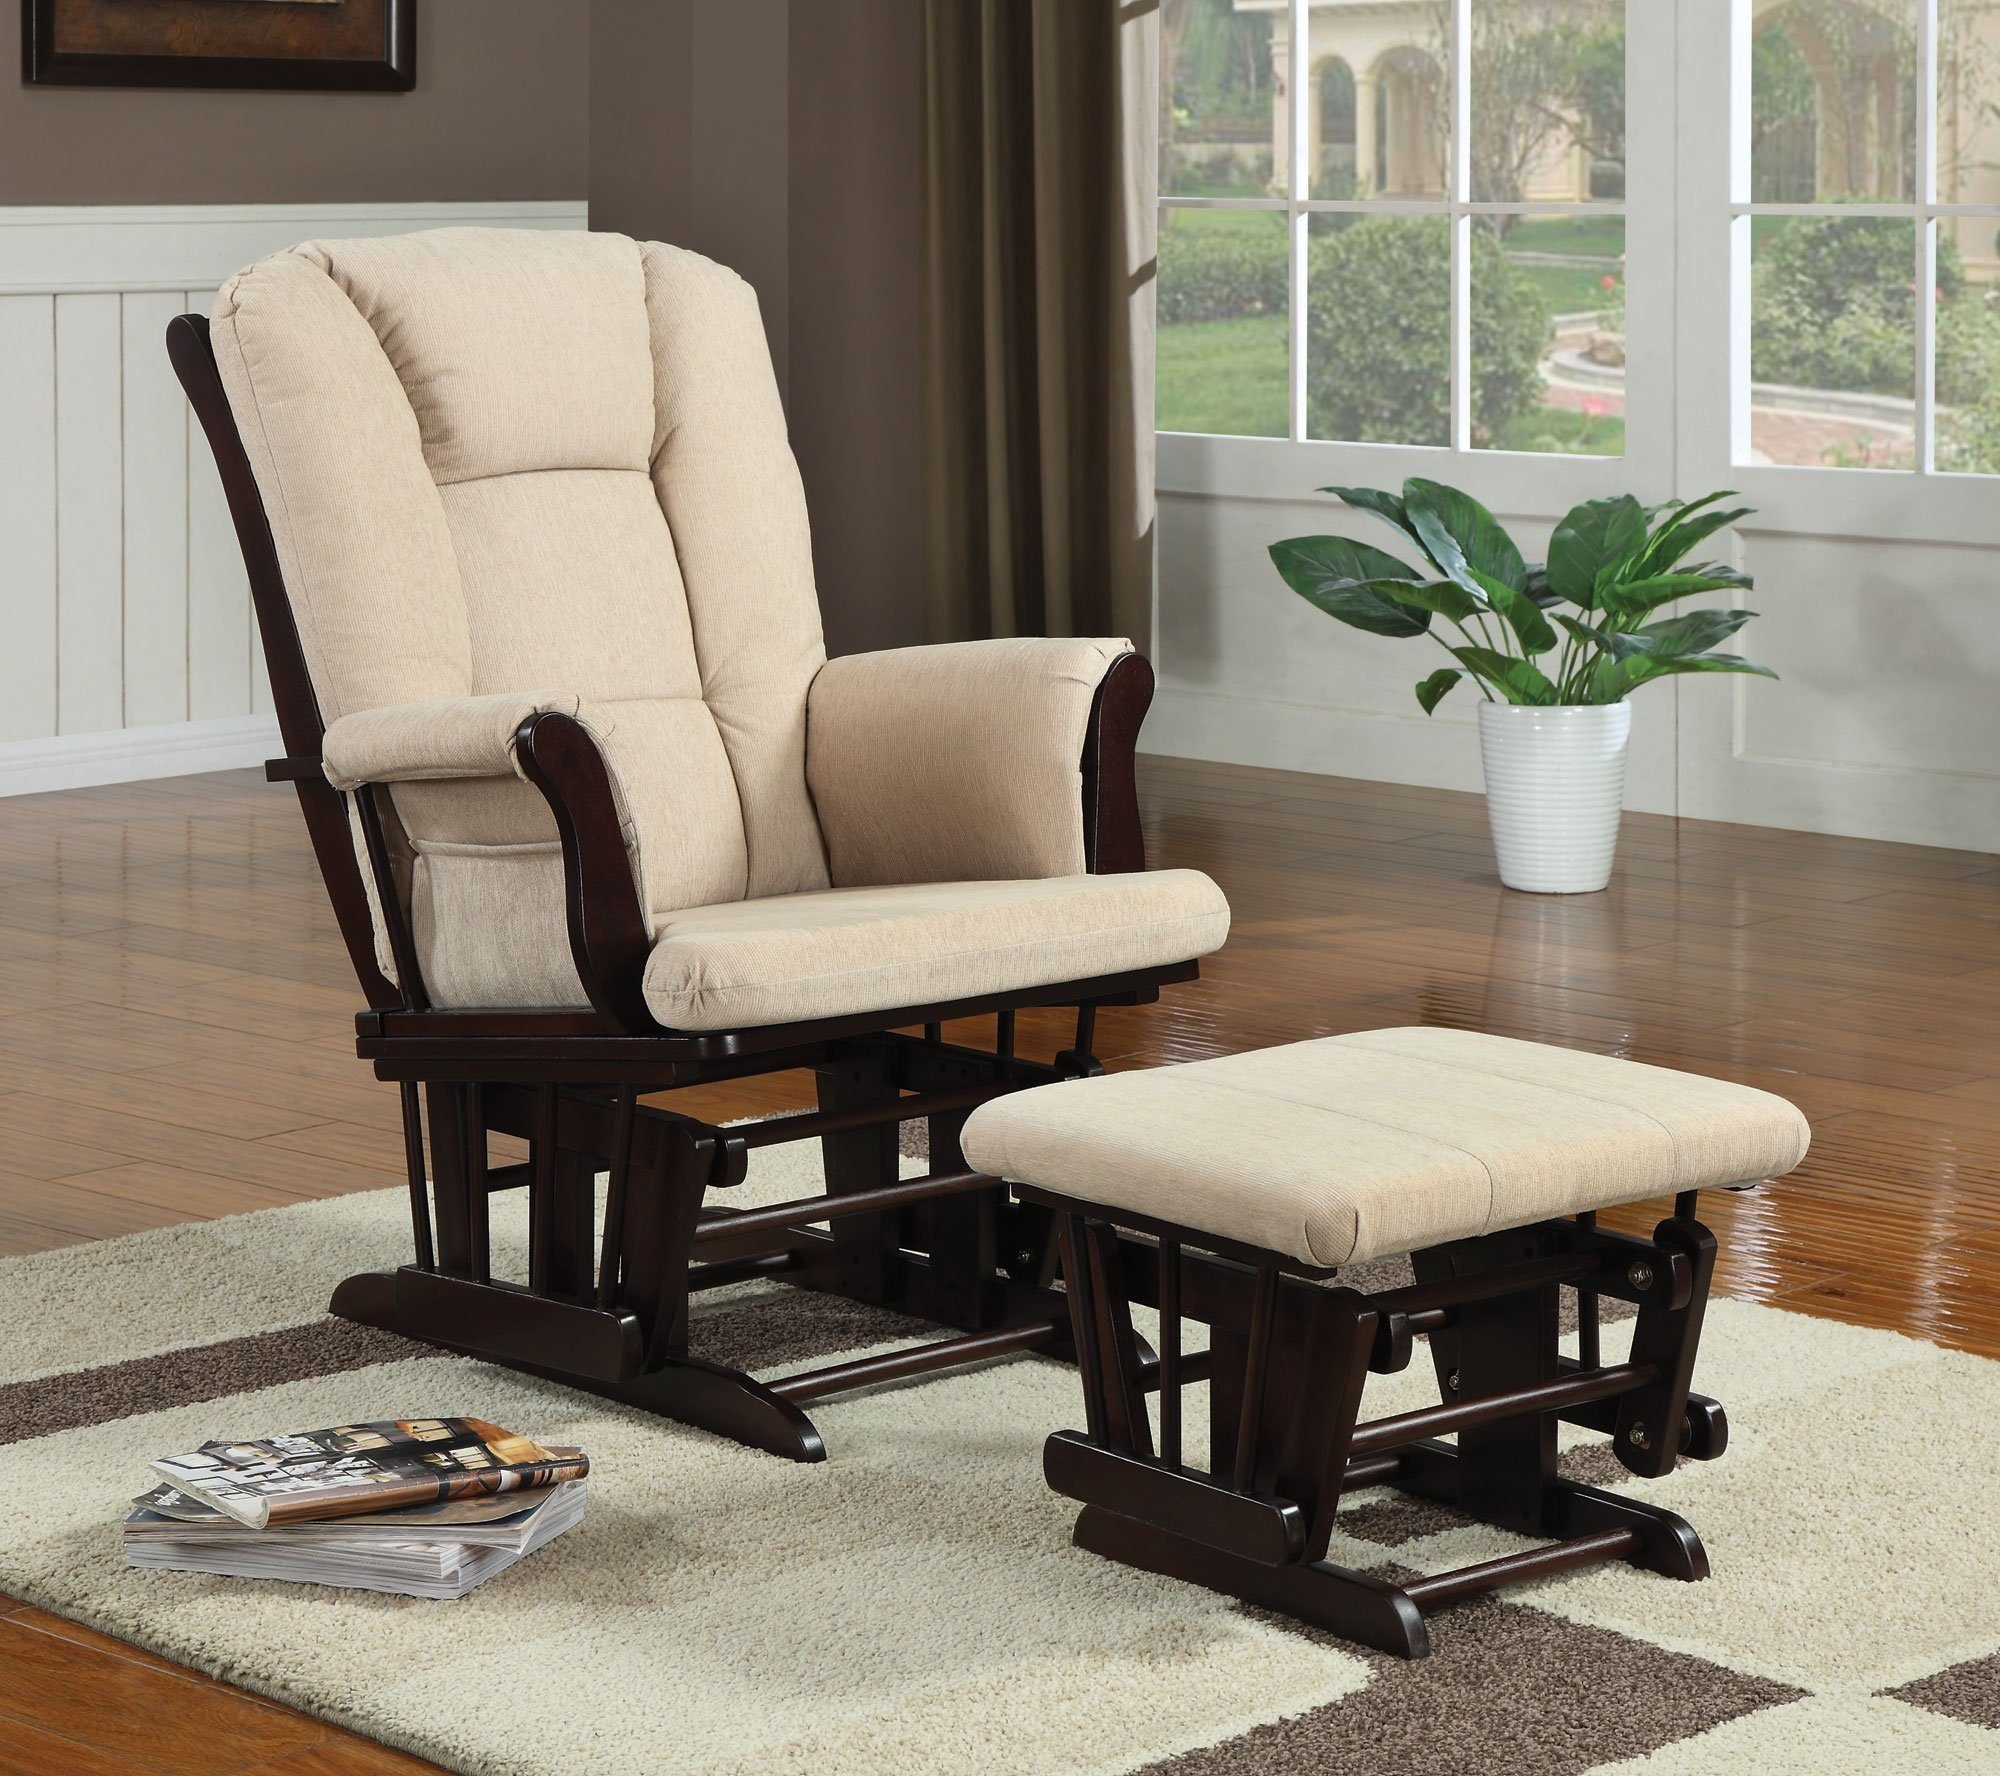 Glider with Ottoman in Cherry Finish by Coaster Home Furnishings